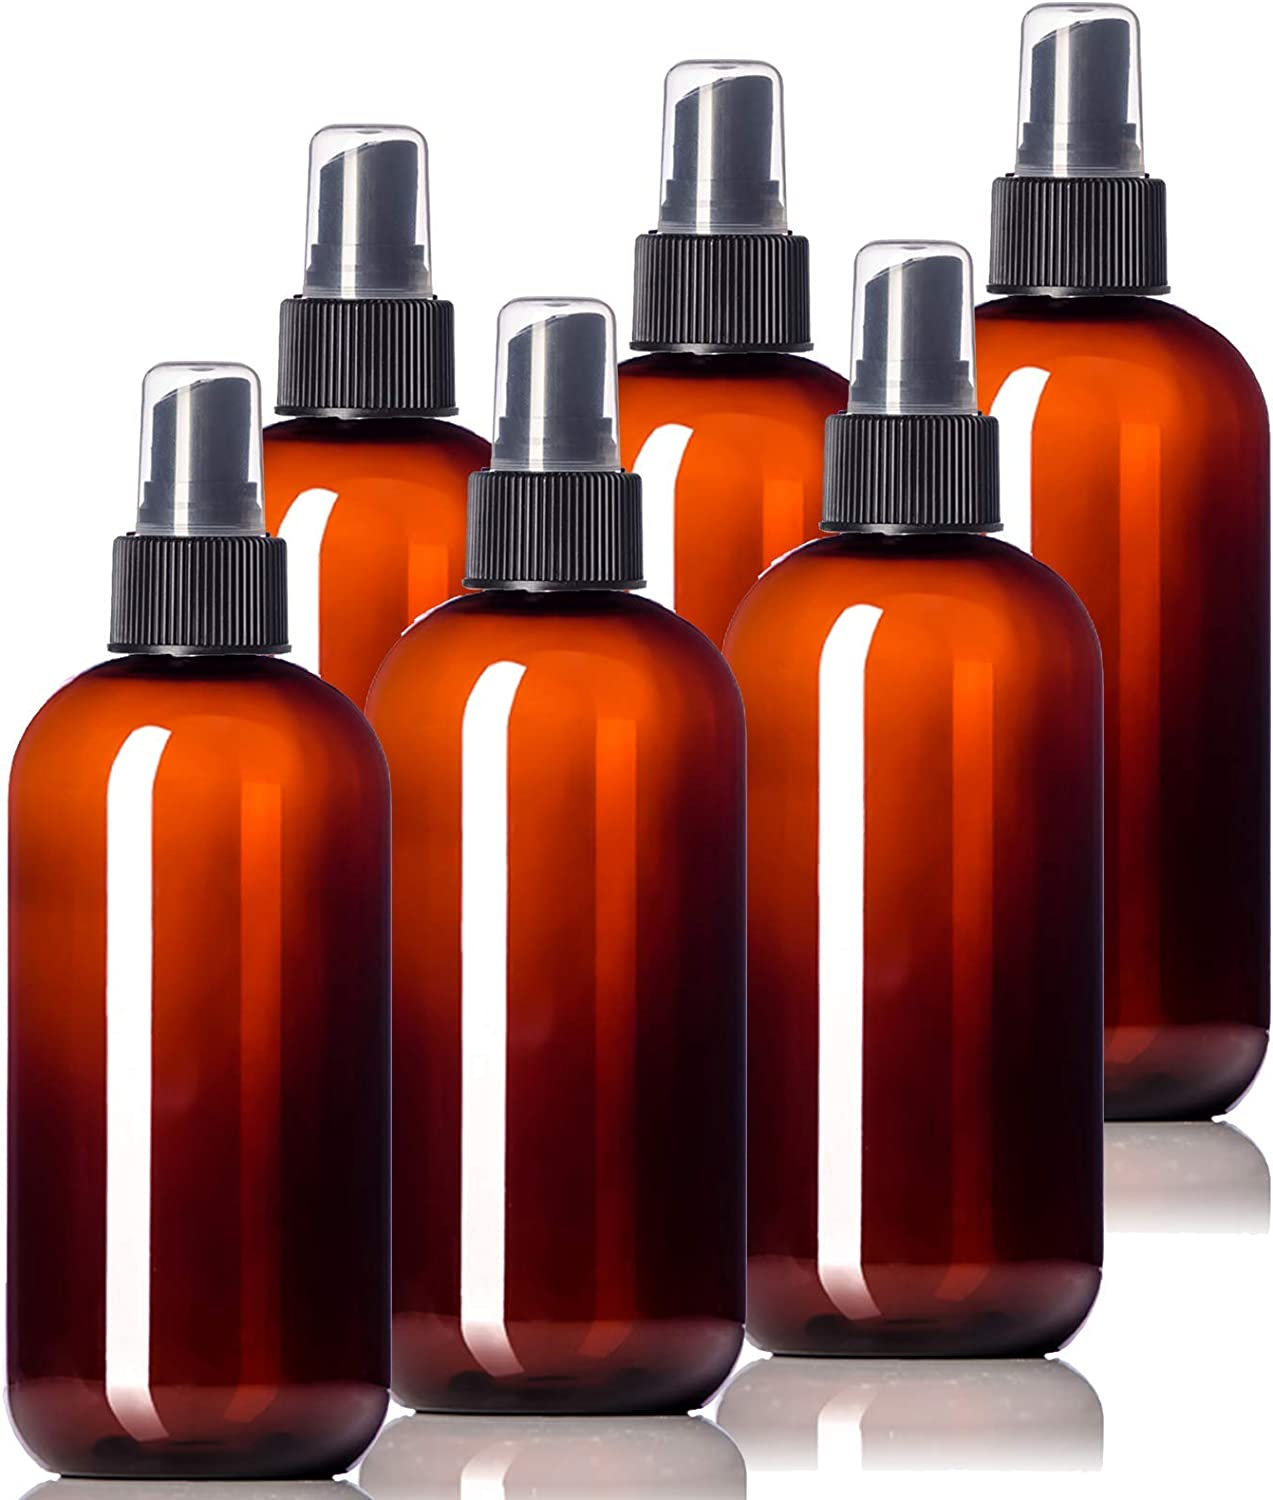 8oz Plastic Amber Bottles (6 Pack) BPA-Free Squeeze Containers with Spray Cap, Labels Included